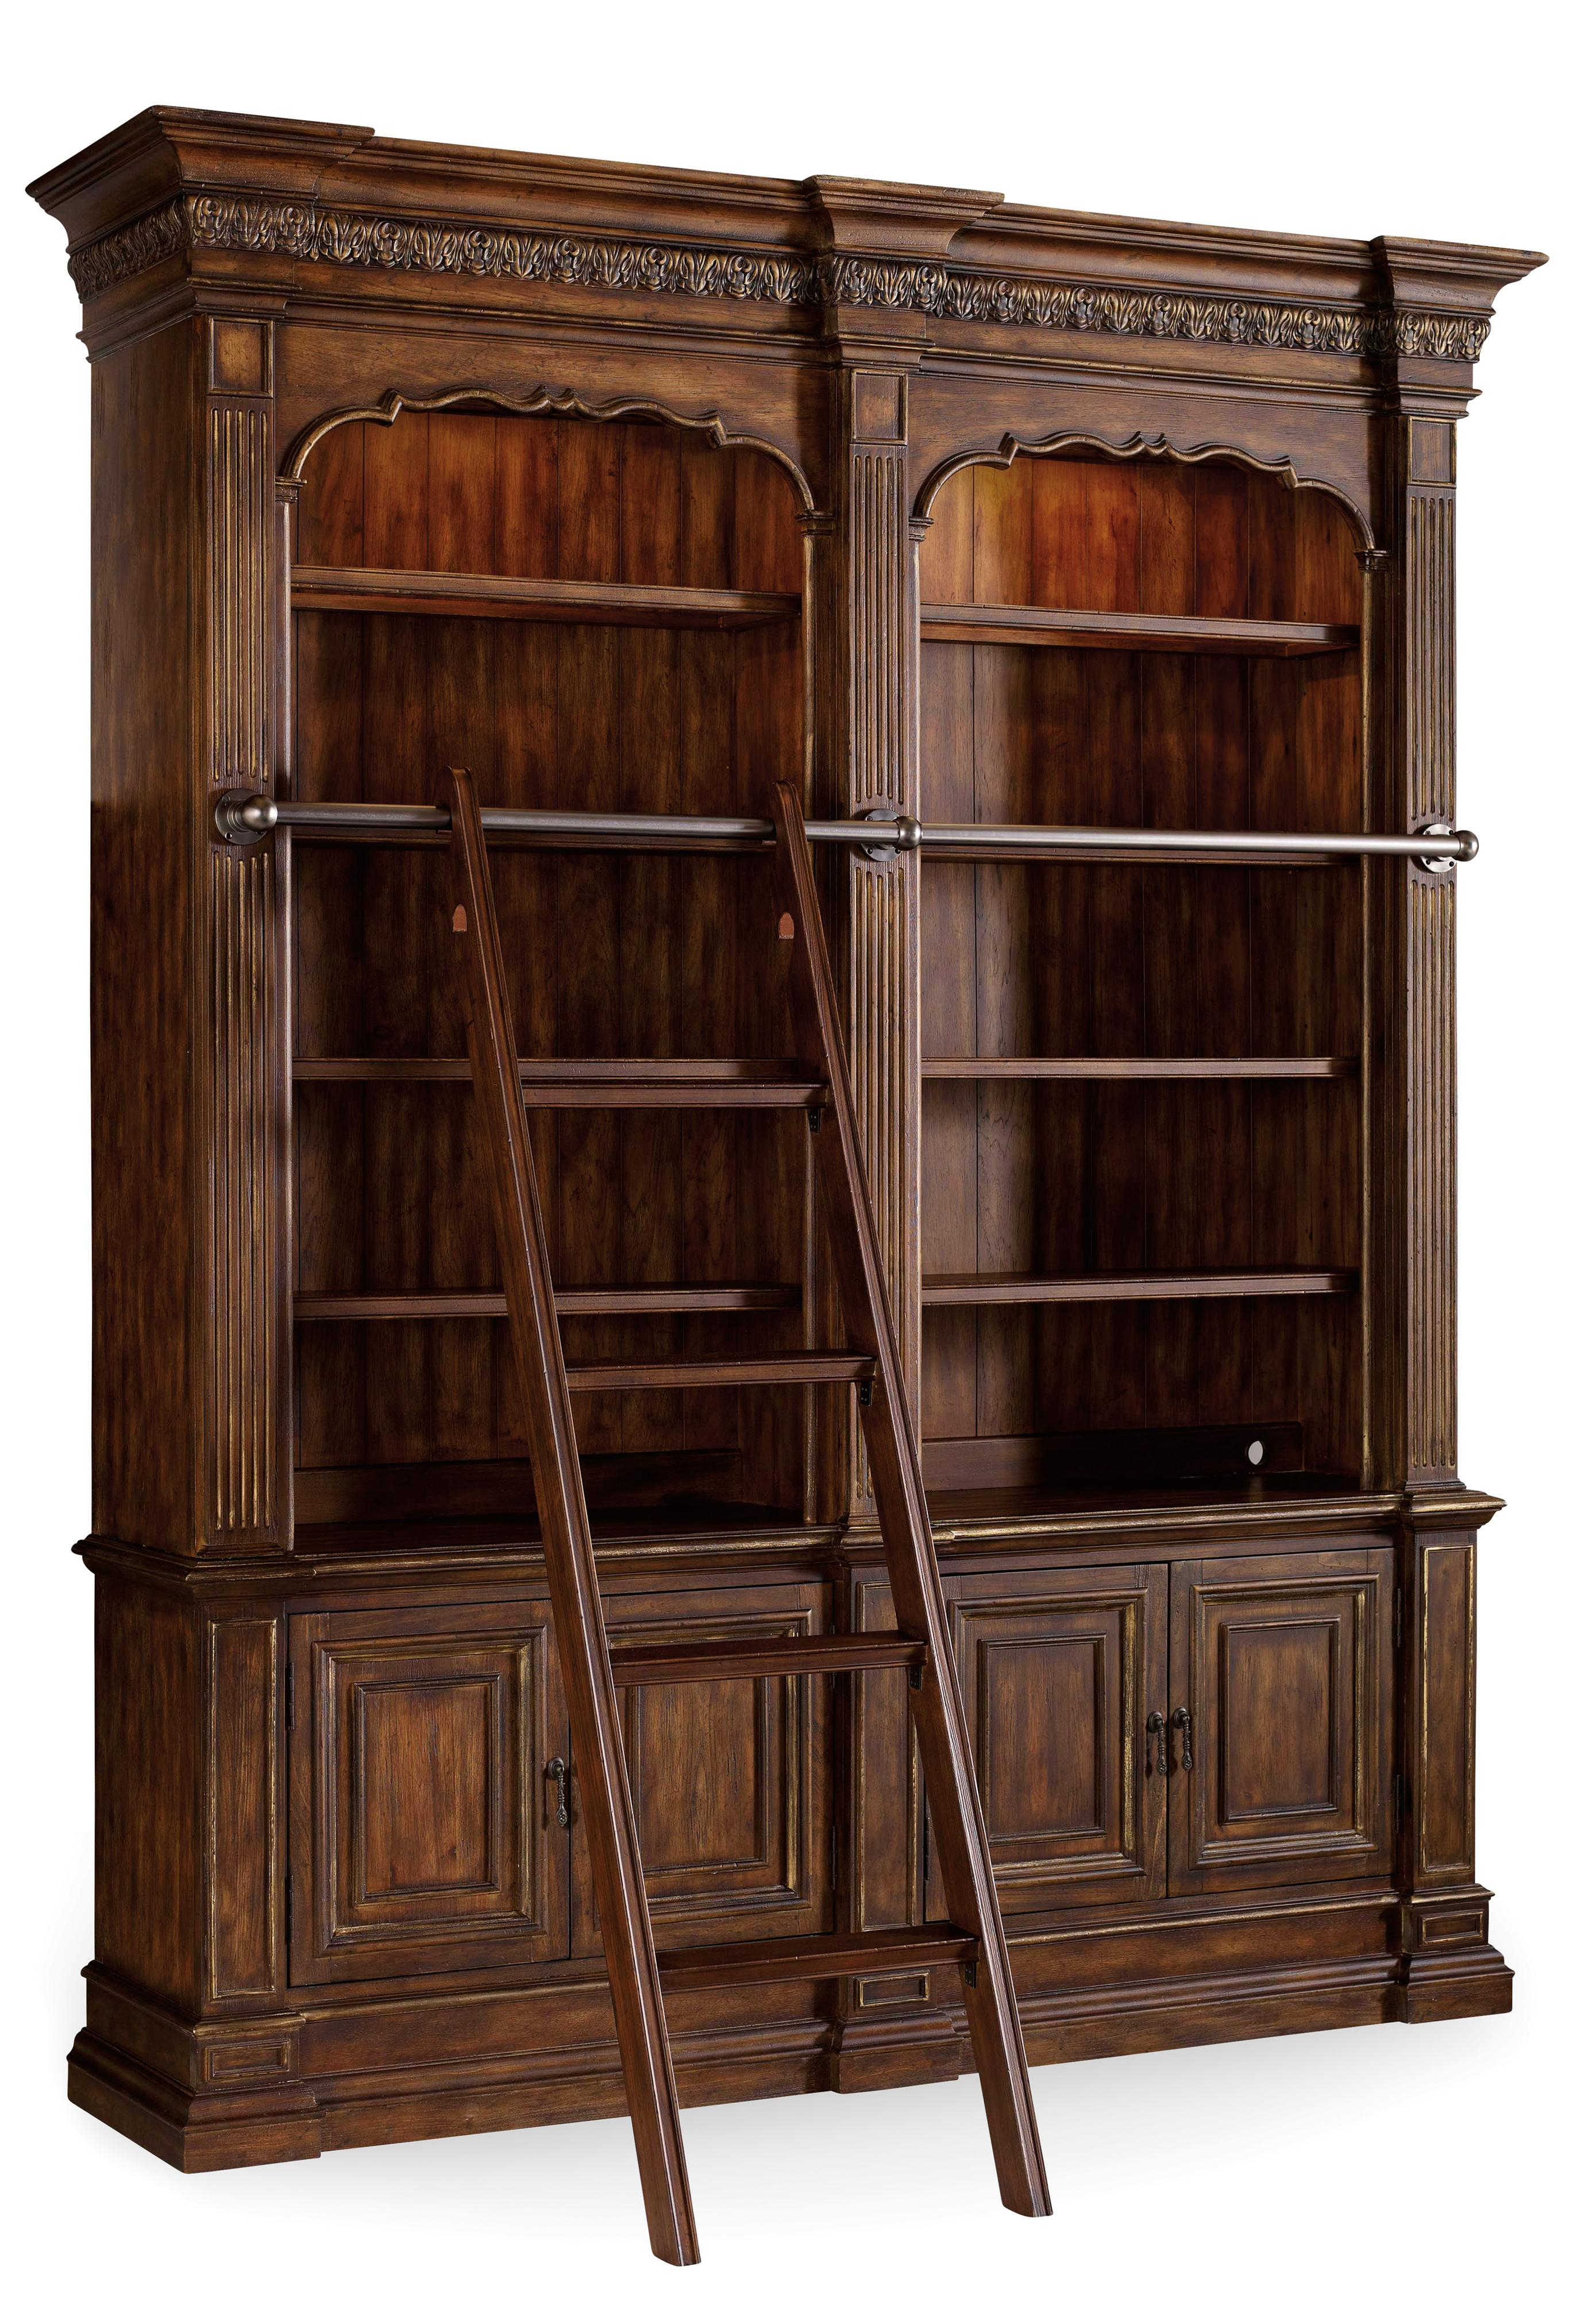 Hooker Furniture Adagio Double Bookcase with Ladder and Rail - Item Number: 5091-10225